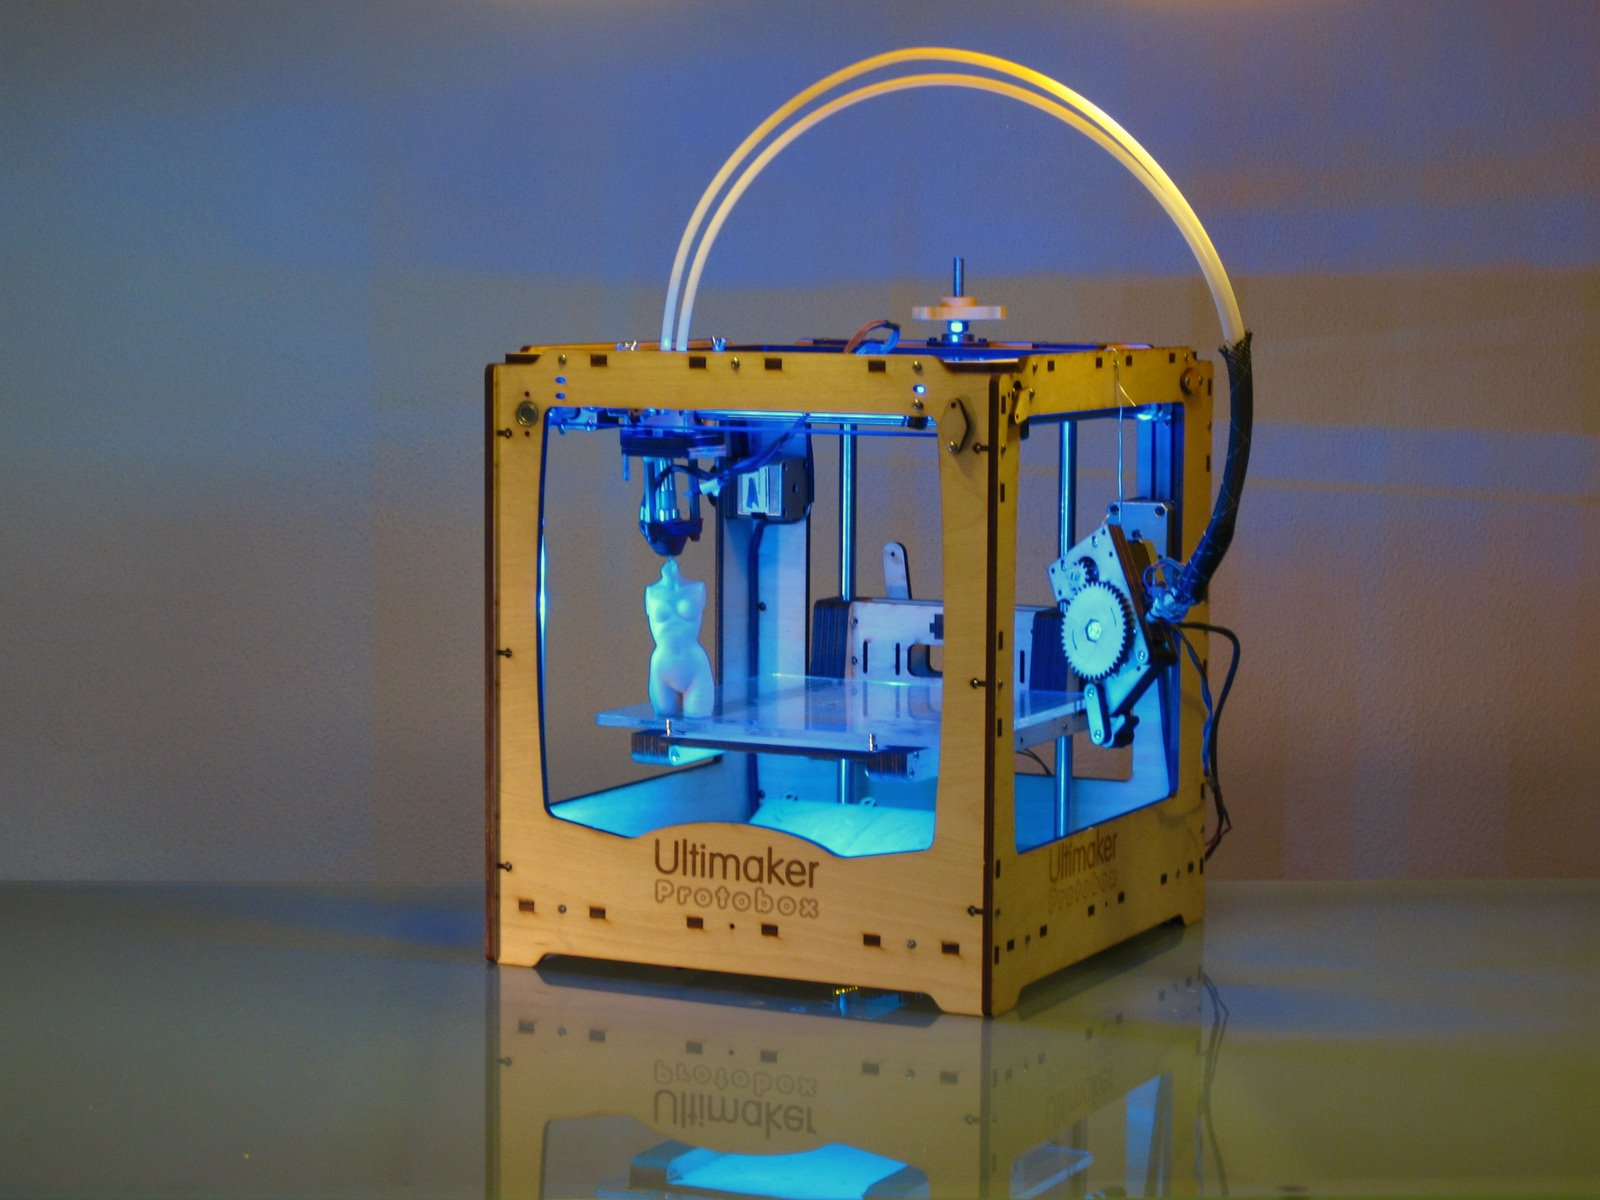 Wireless ultimaker 3d printer j j shortcut 39 s blog for Made with 3d printer